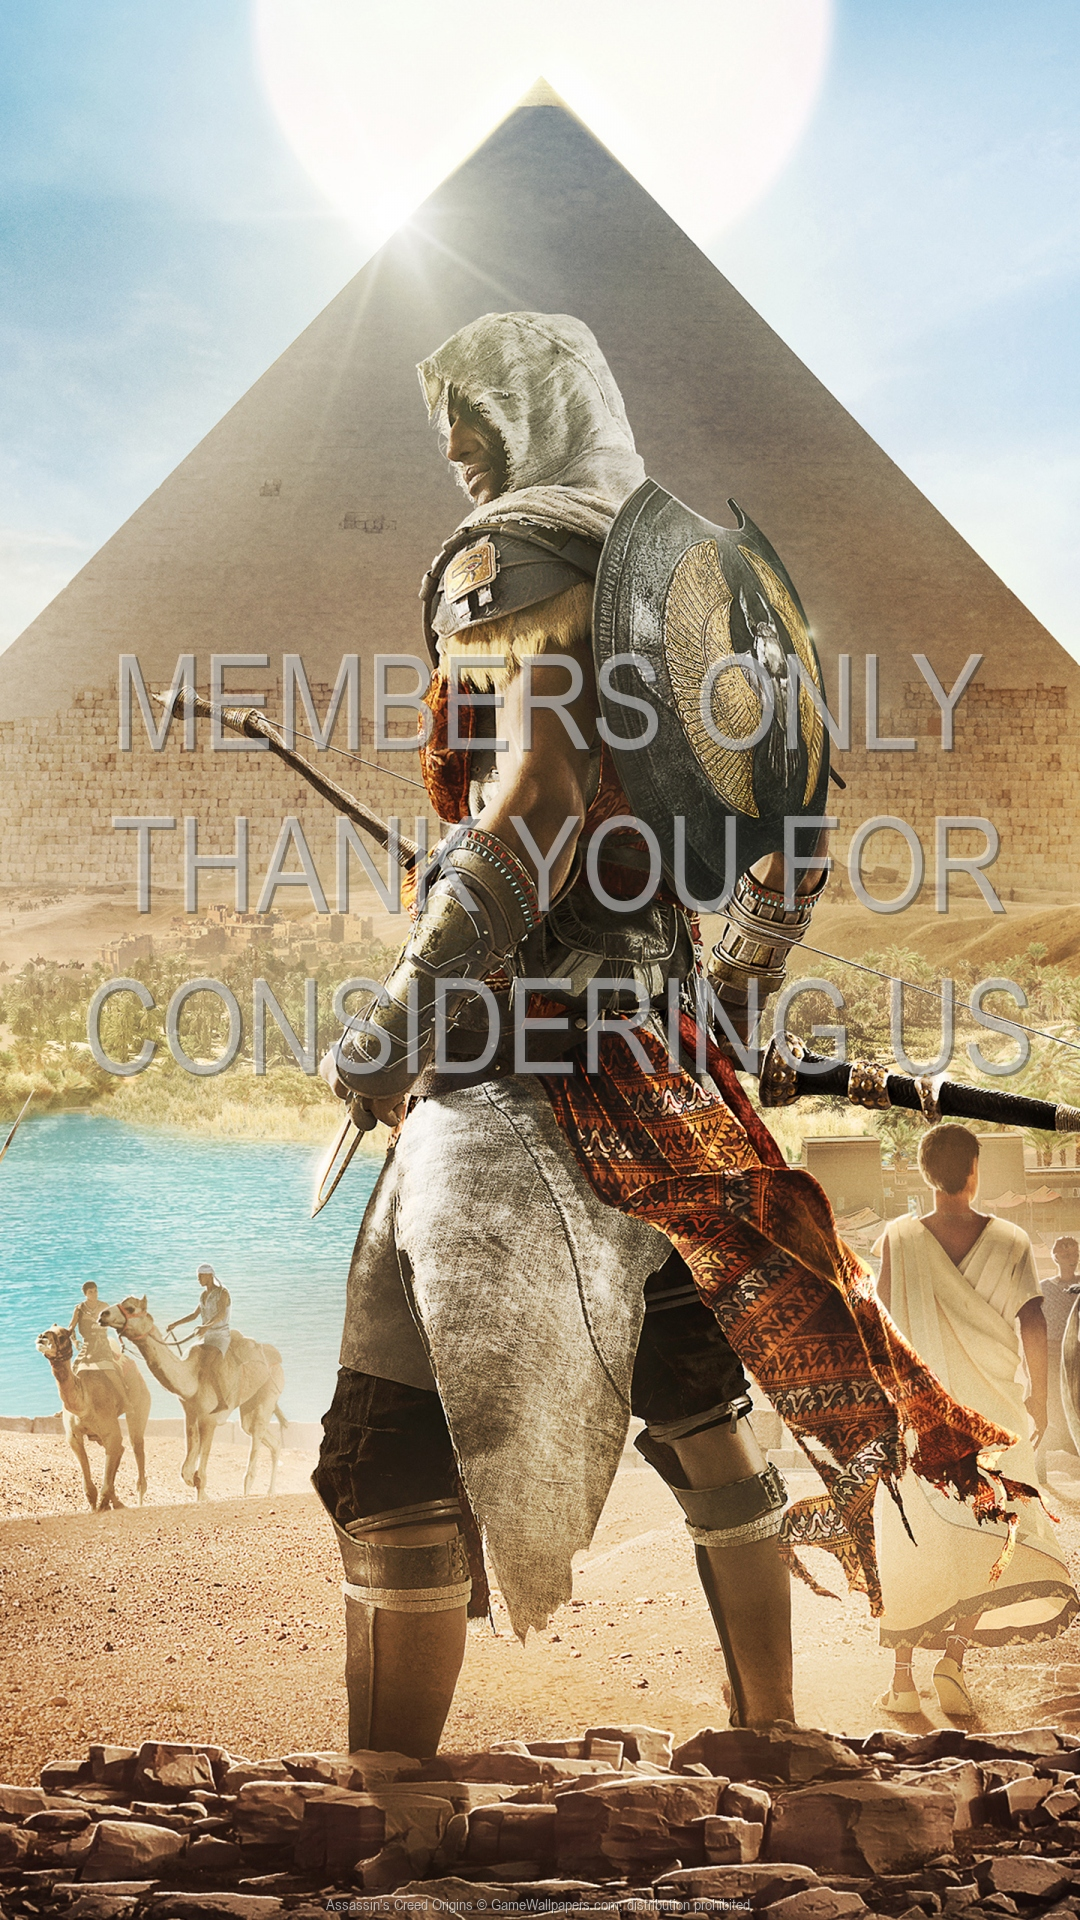 Assassin's Creed: Origins 1920x1080 Mobile wallpaper or background 19